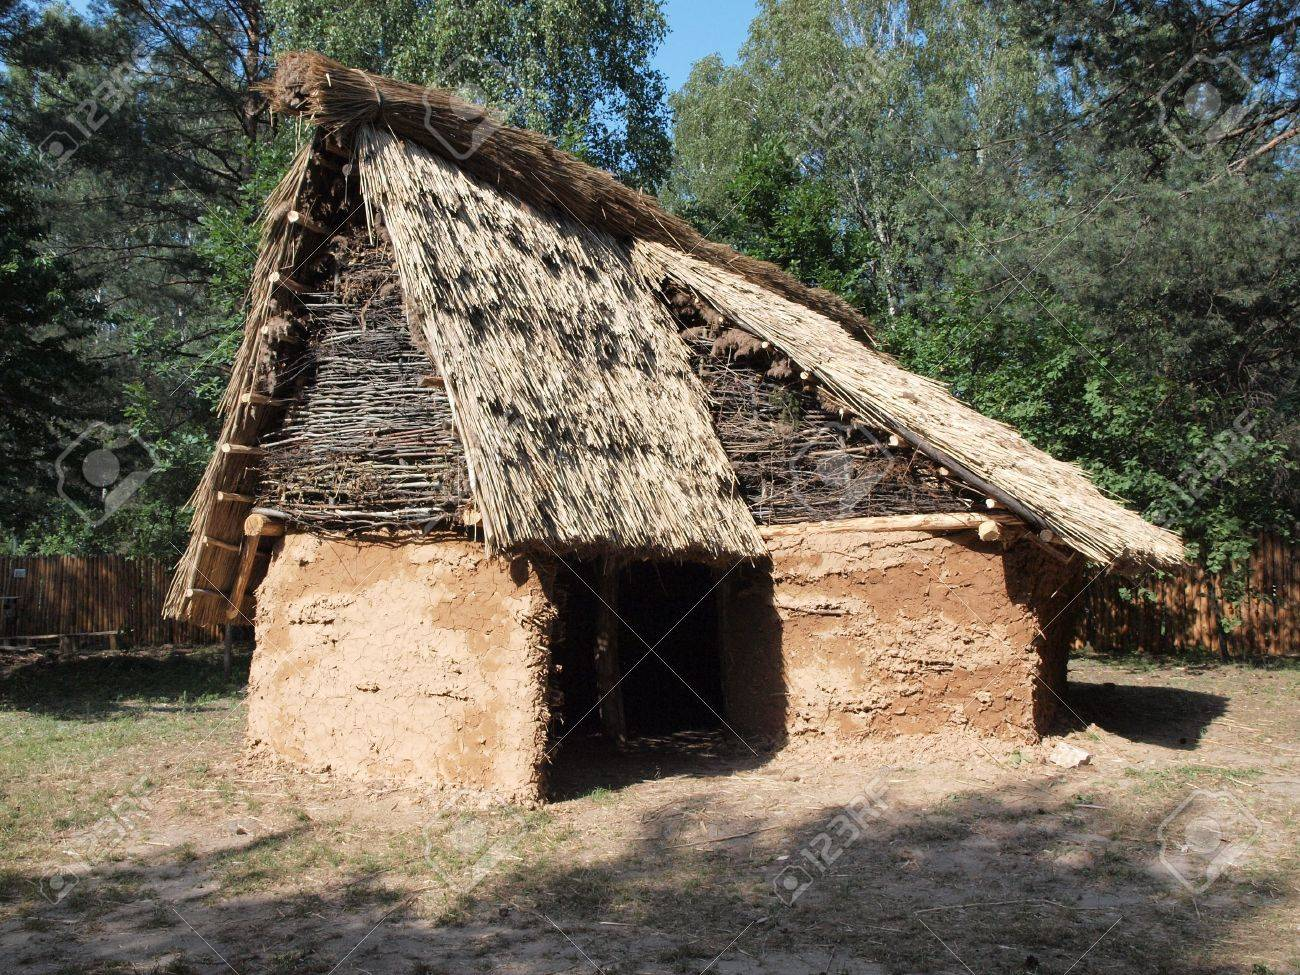 reconstruction-of-a-hut-from-funnel-neck-beaker-culture-archeological-natural.jpg